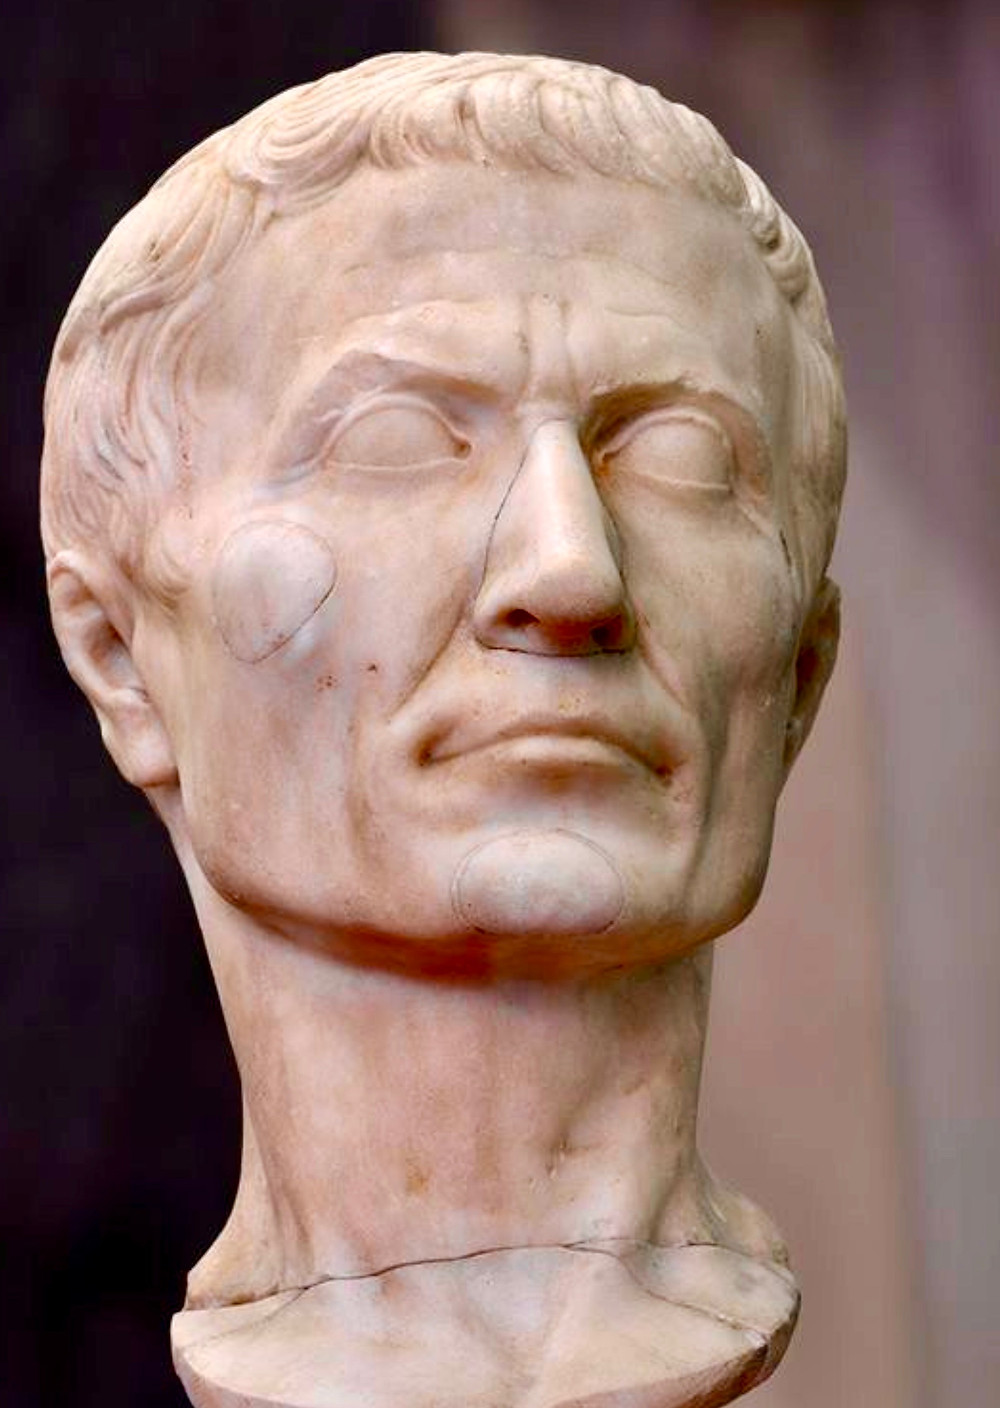 marble bust of Julius Caesar from 30-20 BC, a highlight of Pisa's Duomo Museum